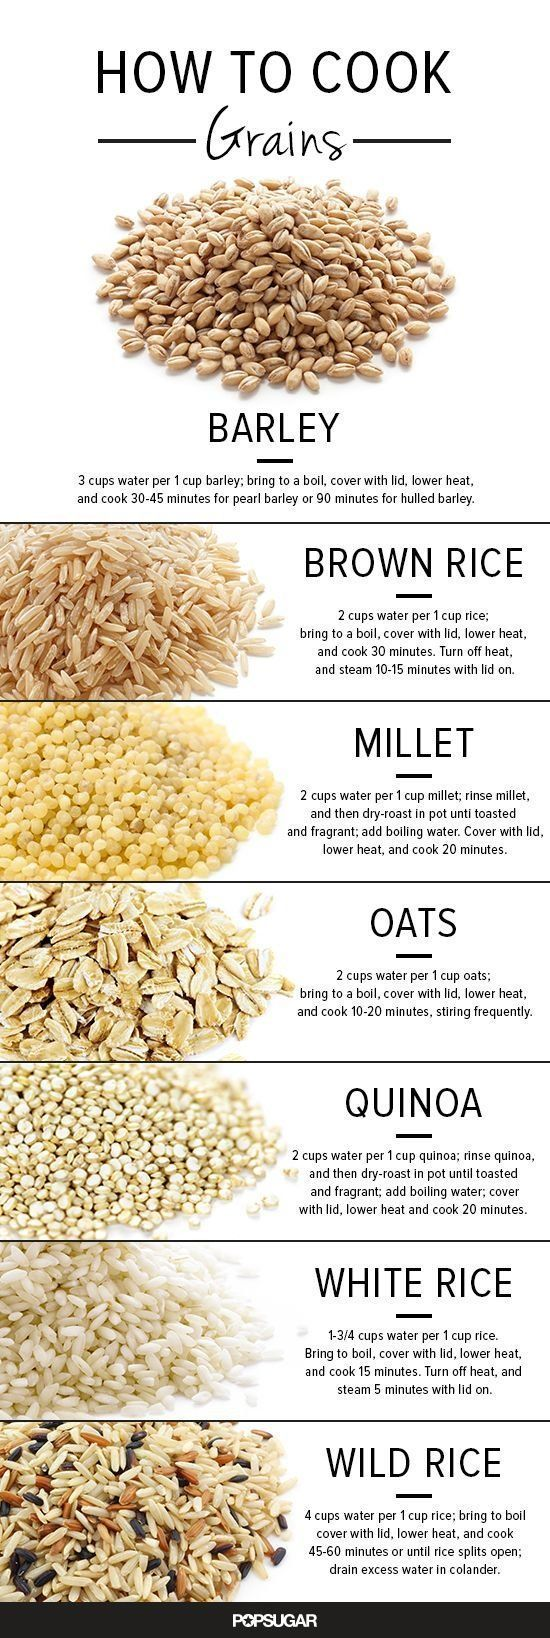 brown rice provides superior nutrition value over white rice [ 550 x 1638 Pixel ]